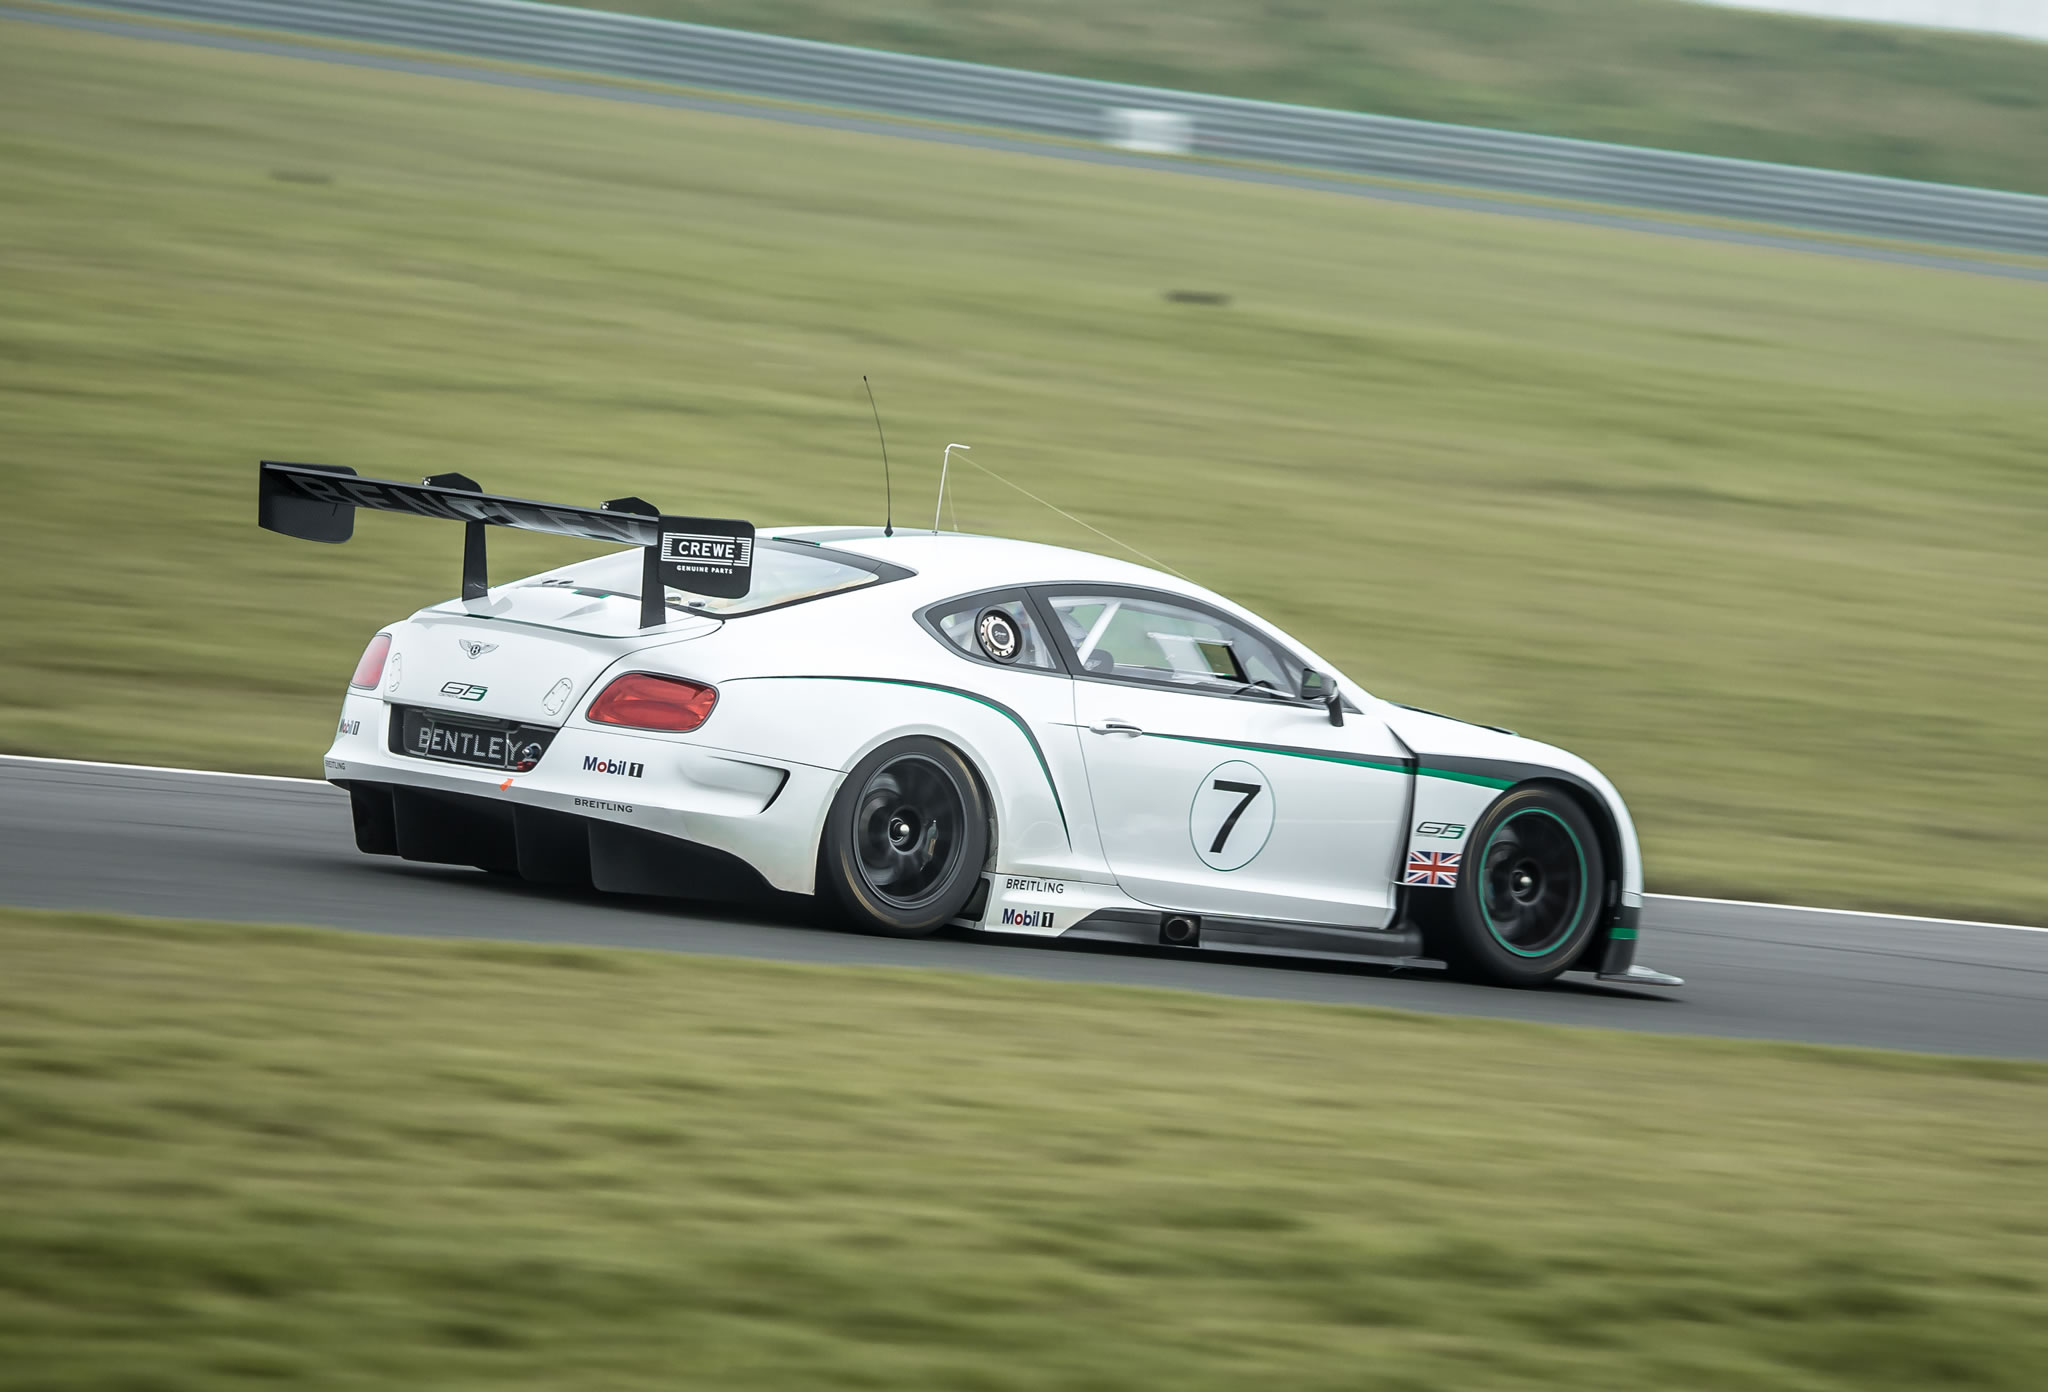 2018 Bentley Continental GT3 Racecar photo - 4